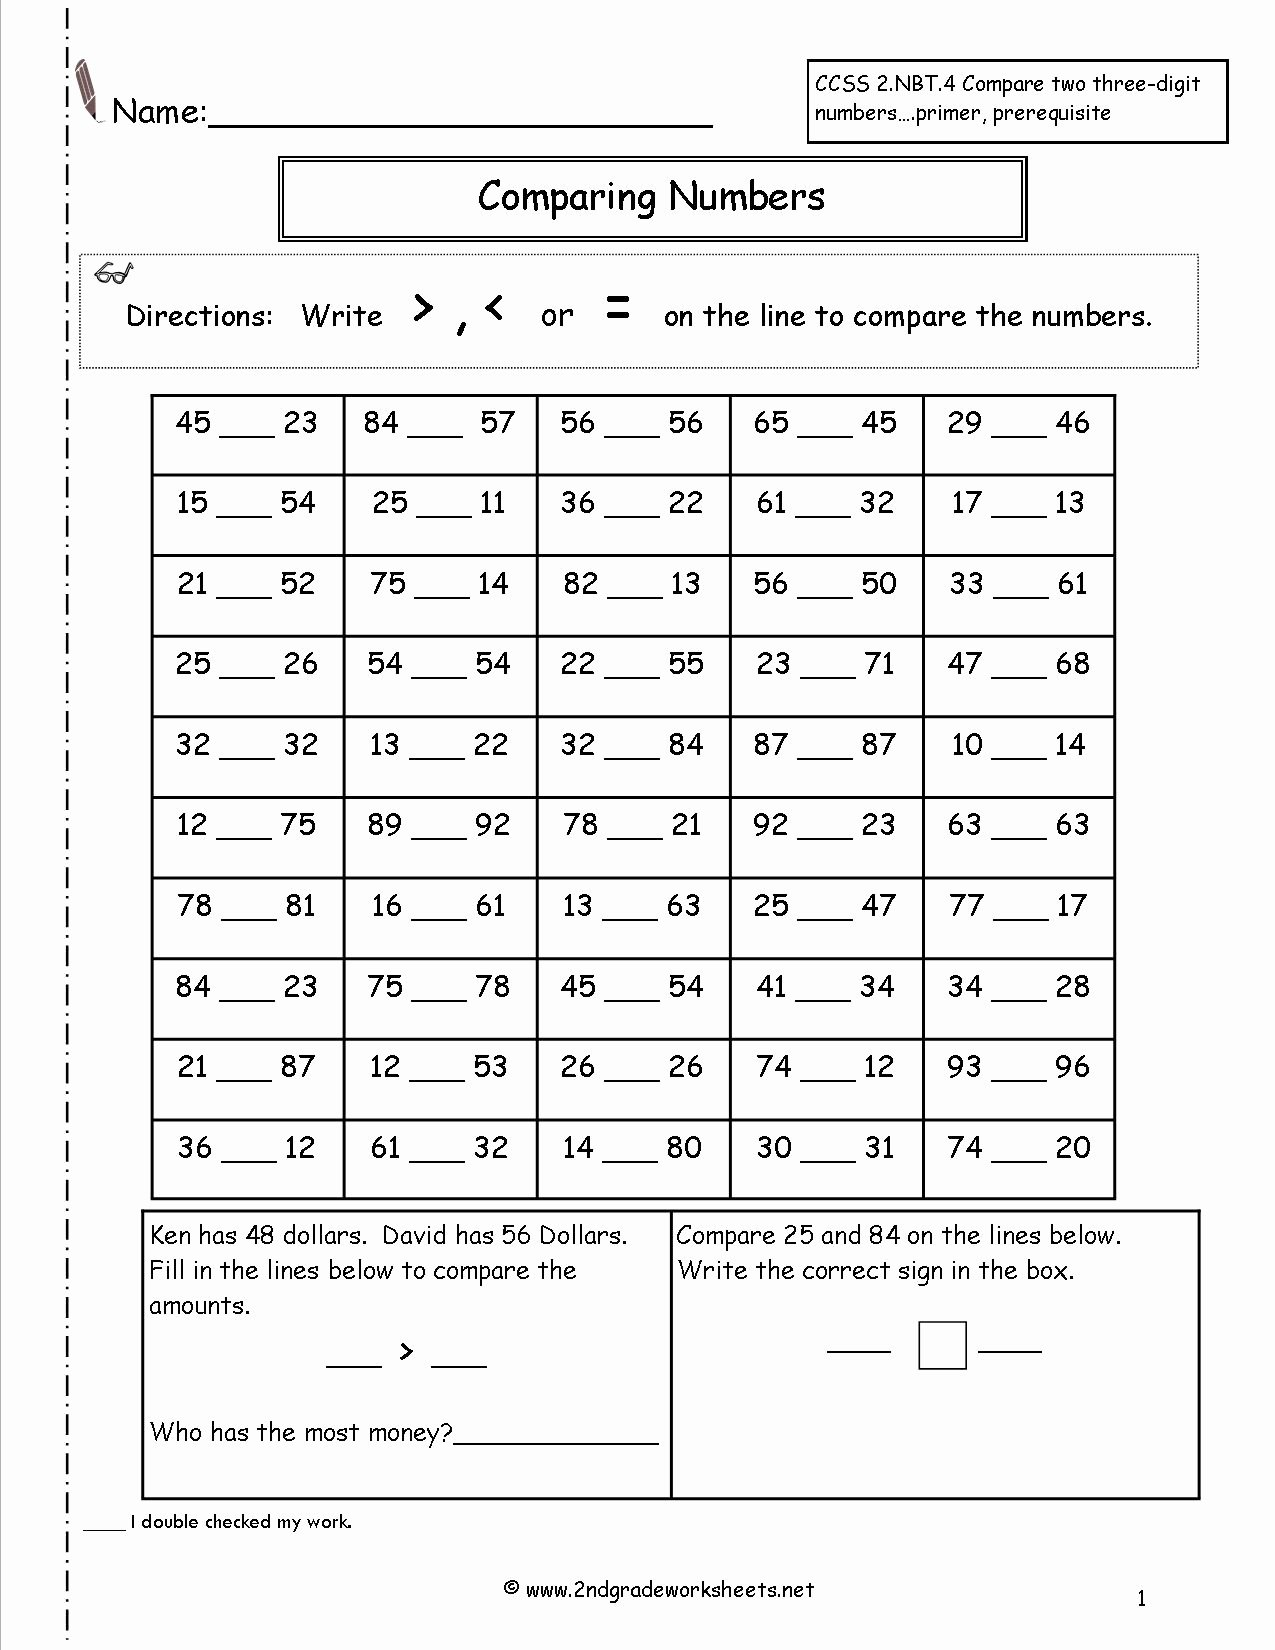 Comparing Numbers Worksheets 2nd Grade Kids Worksheet Worksheet Awesome Math Fact Sheets for 2nd Grade